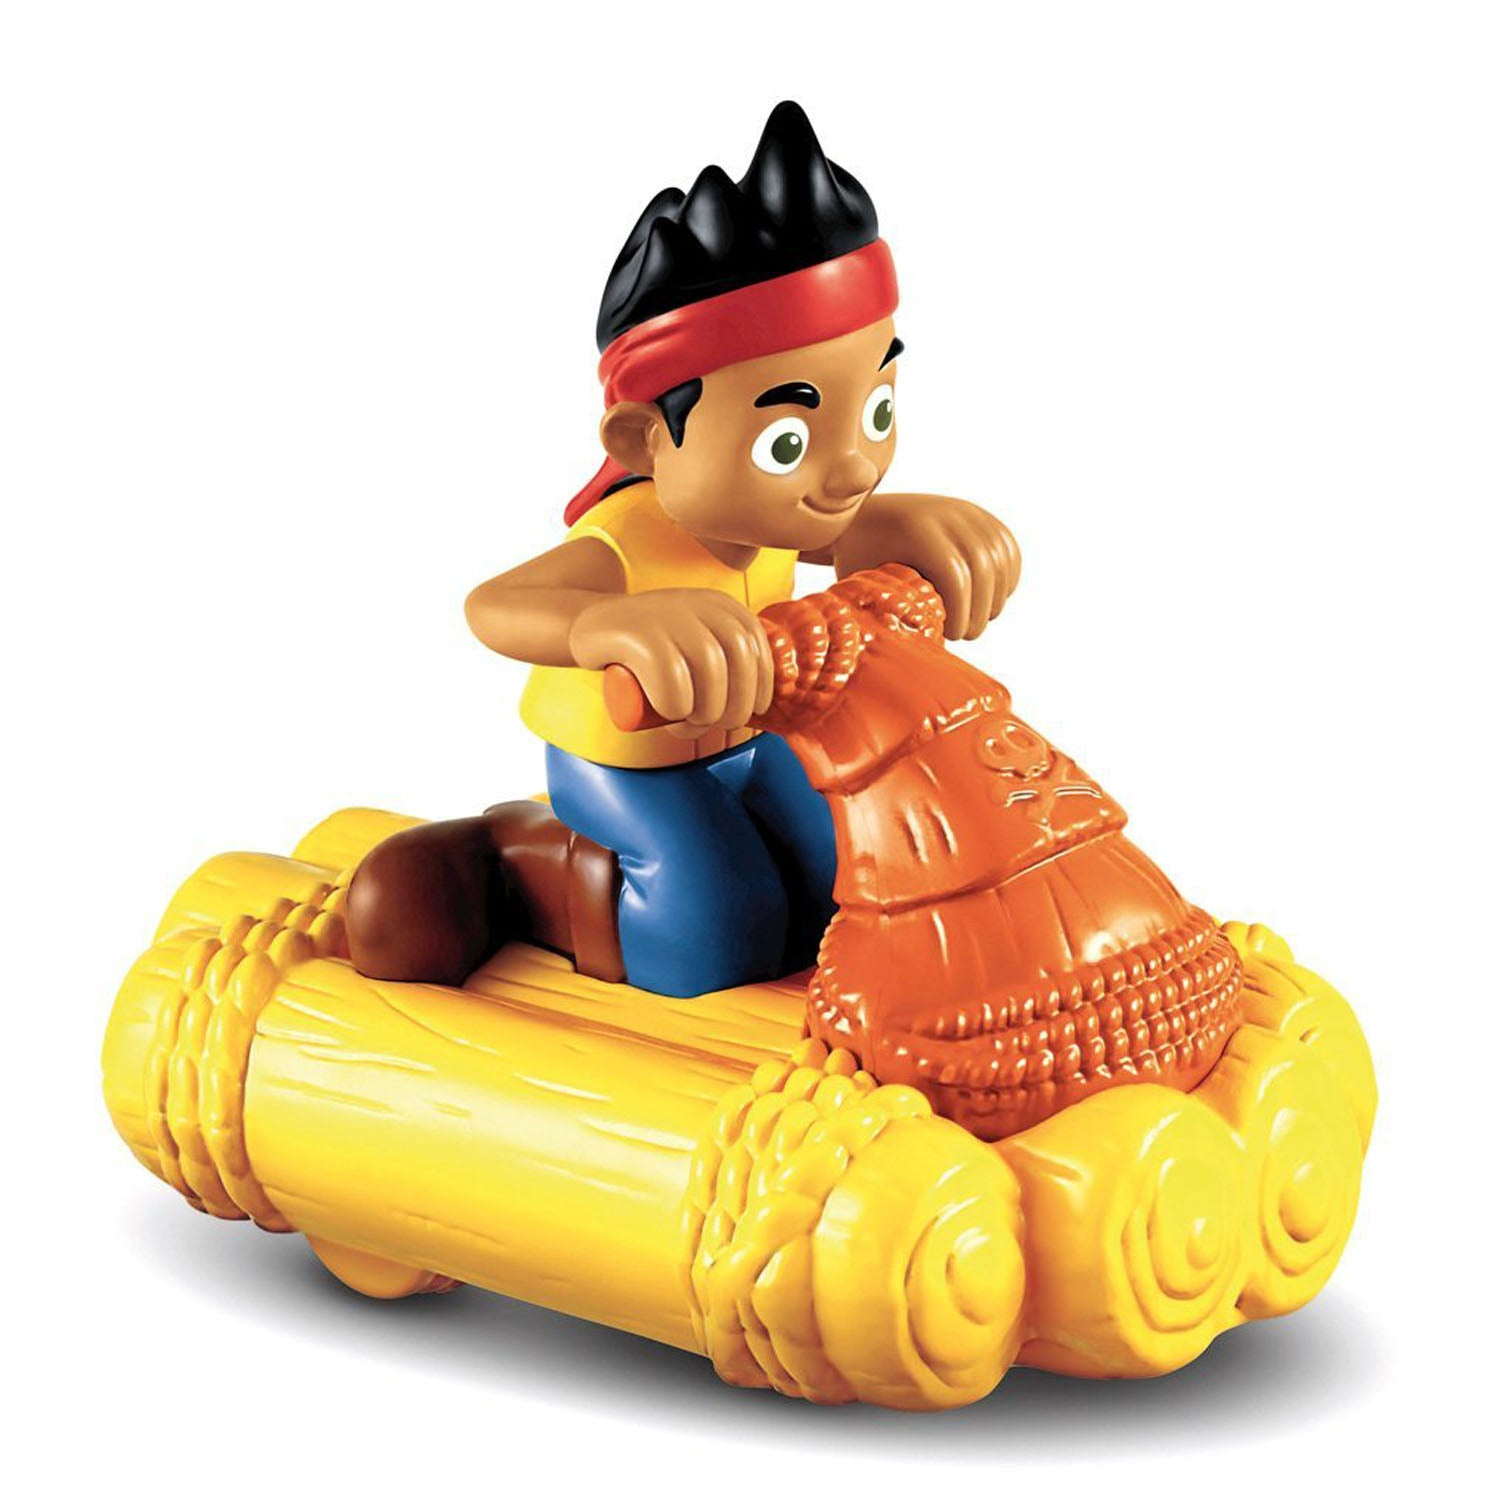 Jake and The Never Land Pirates Toys - Jet Racer Jake